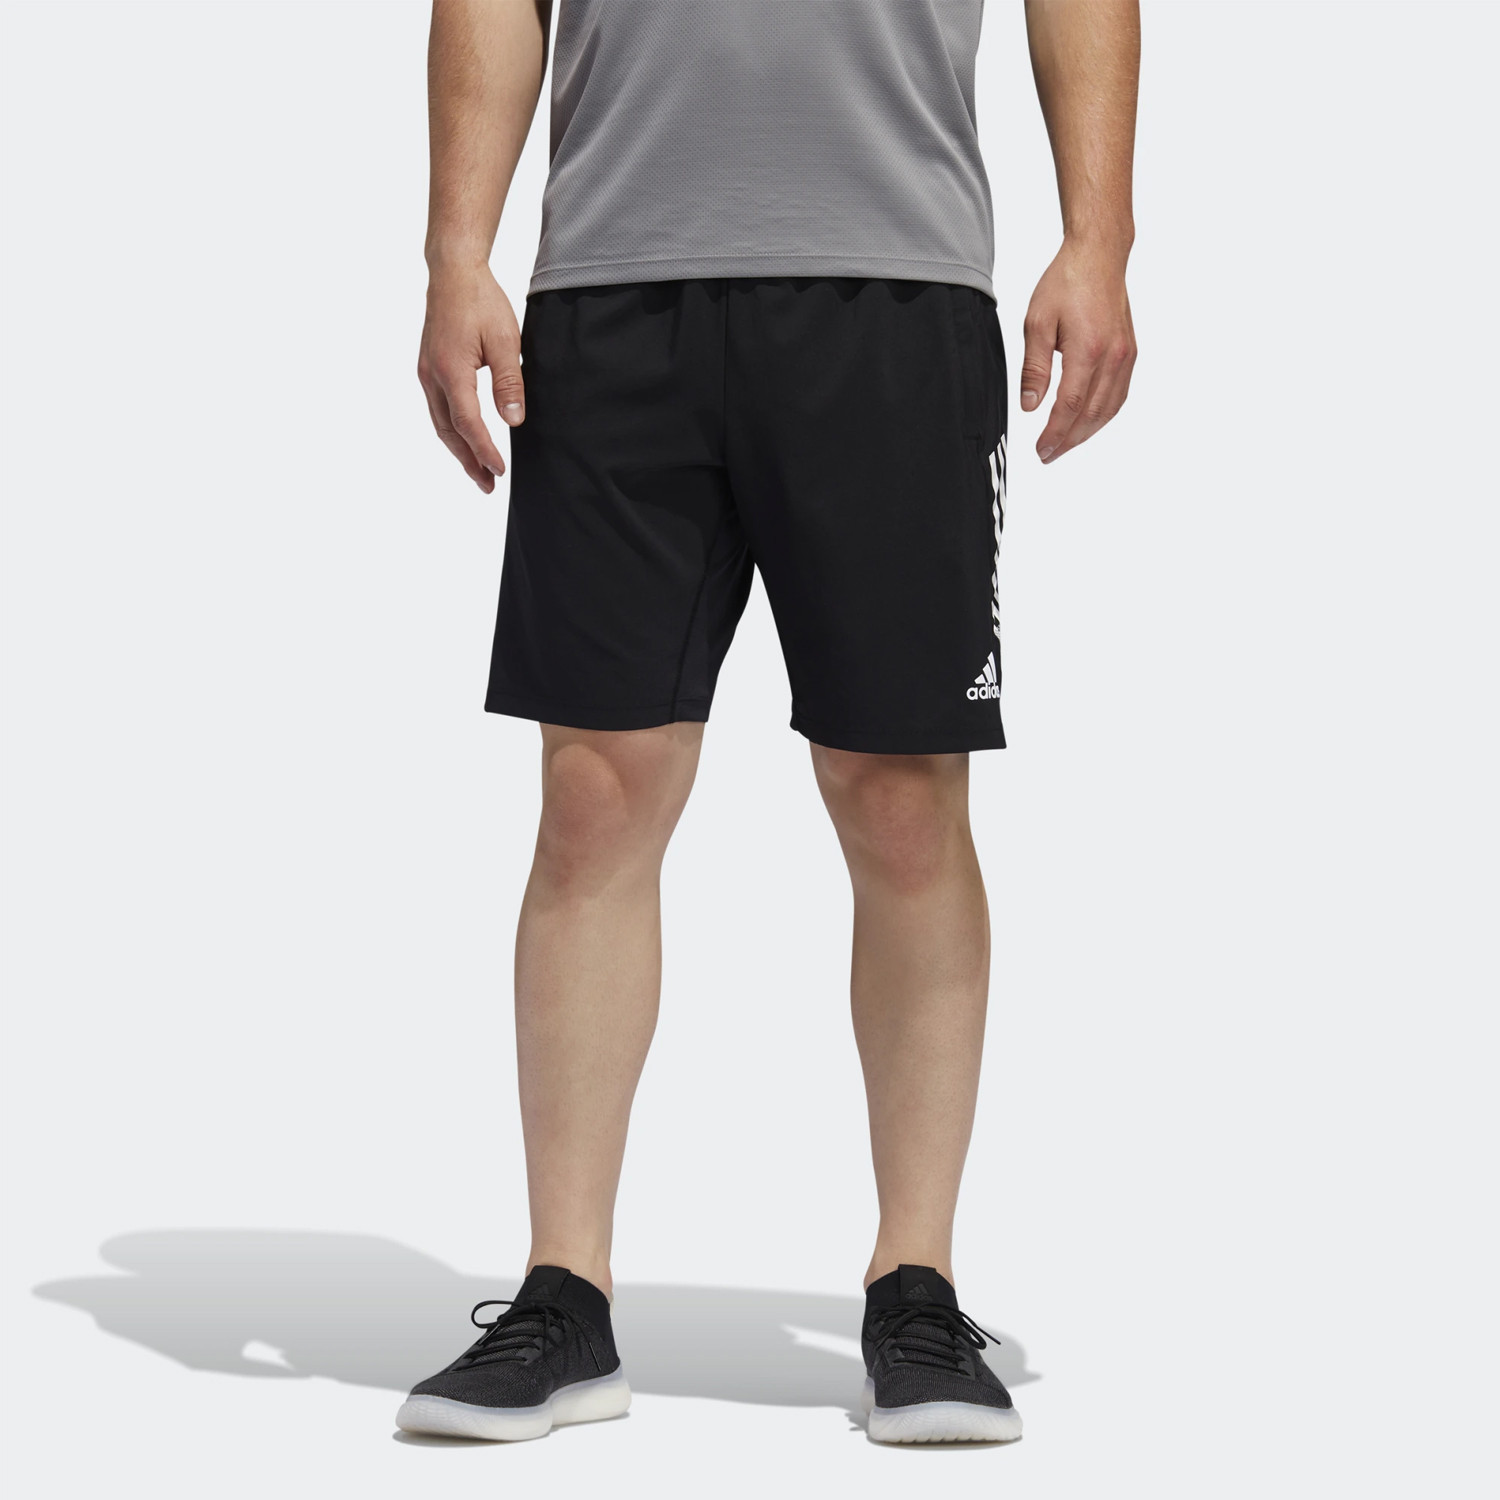 adidas 4KRFT 3-Stripes 9-Inch Men's Shorts (9000045269_1469)